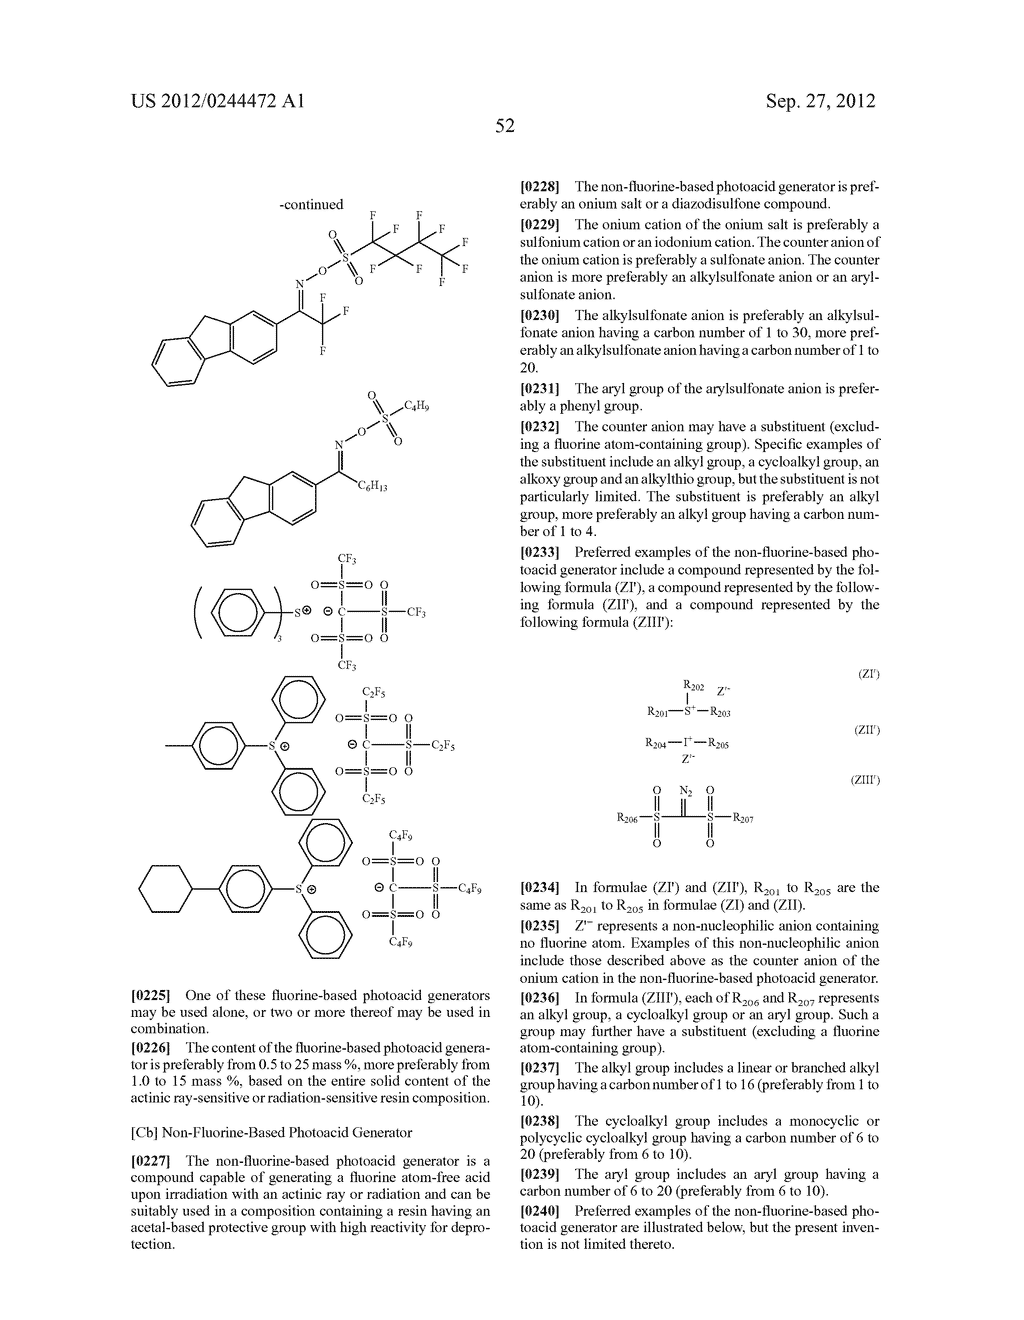 ACTINIC RAY-SENSITIVE OR RADIATION-SENSITIVE RESIN COMPOSITION, FILM     FORMED USING THE COMPOSITION AND PATTERN FORMING METHOD USING THE SAME - diagram, schematic, and image 53